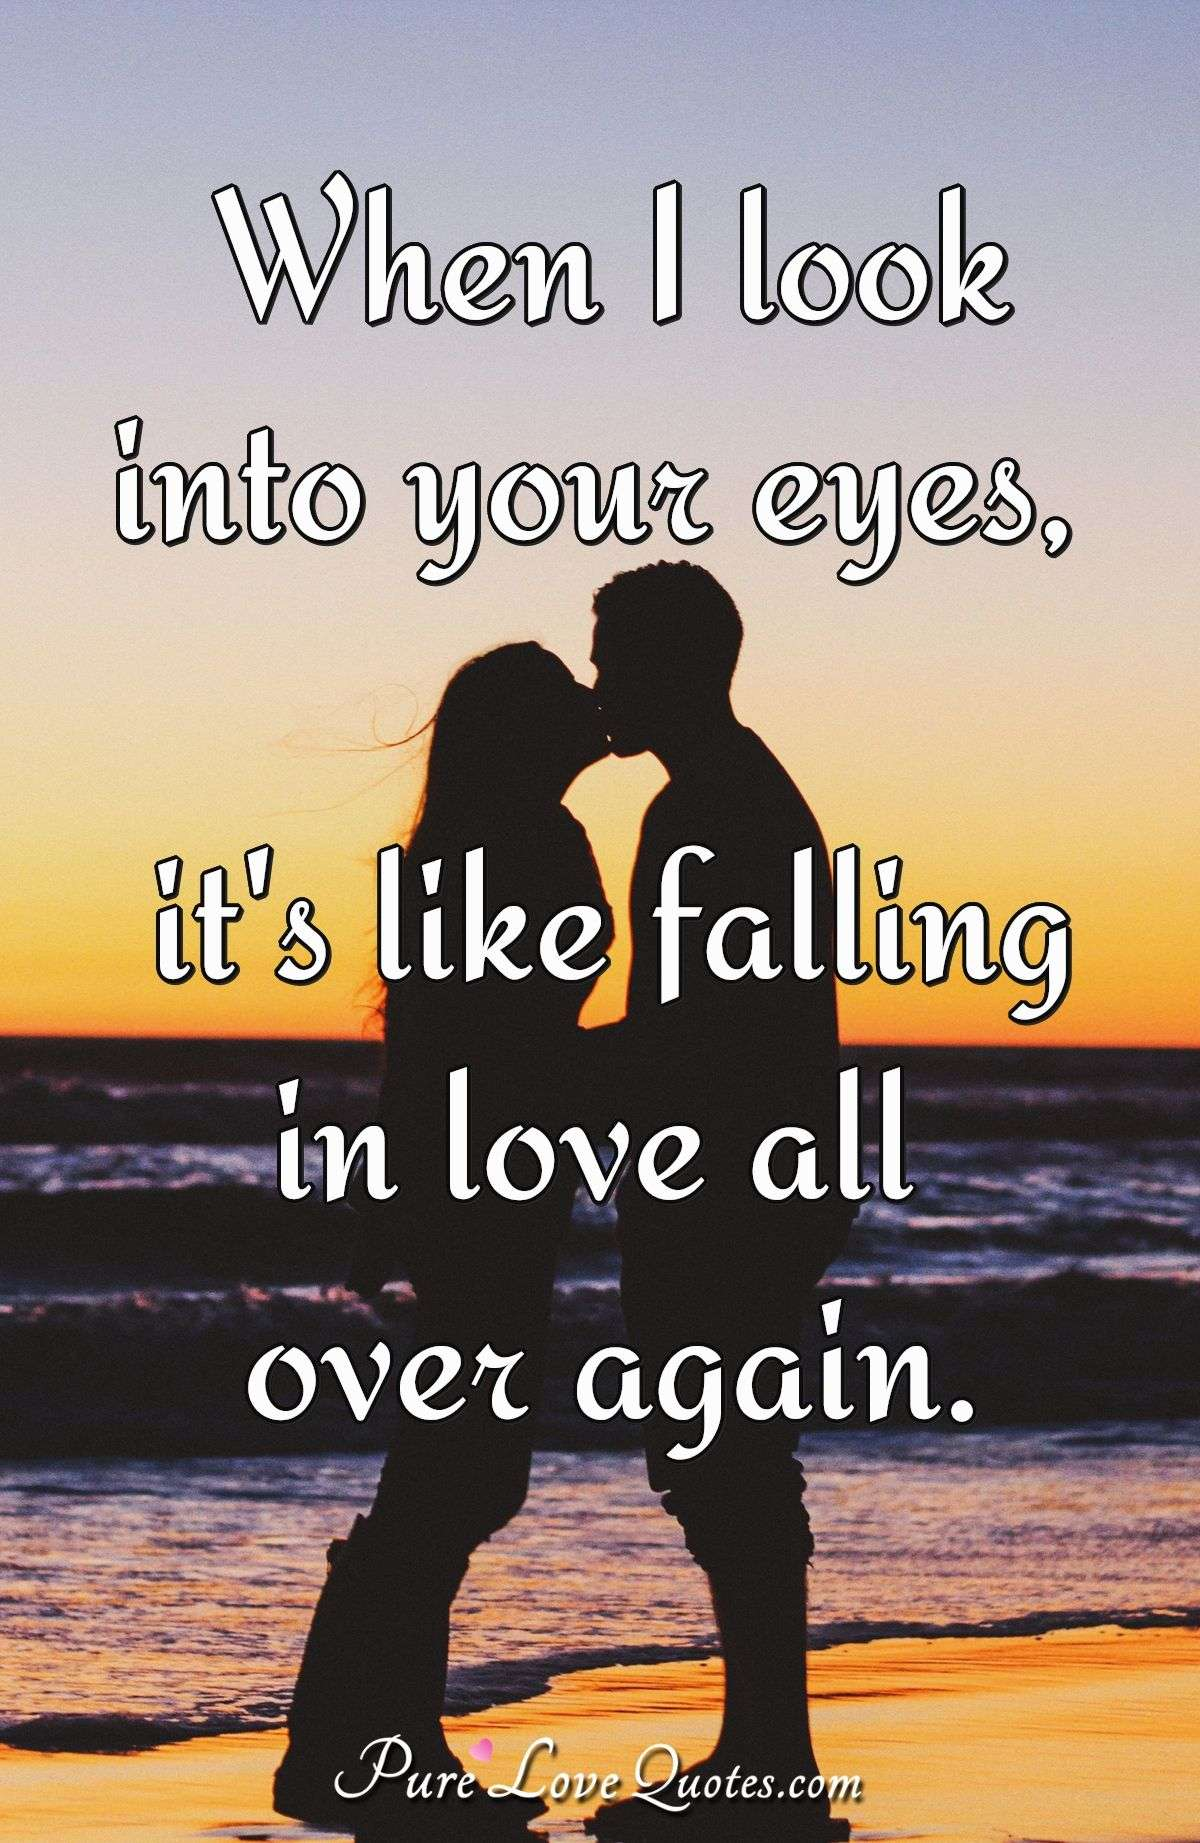 When I look into your eyes, it's like falling in love all over again. - Anonymous